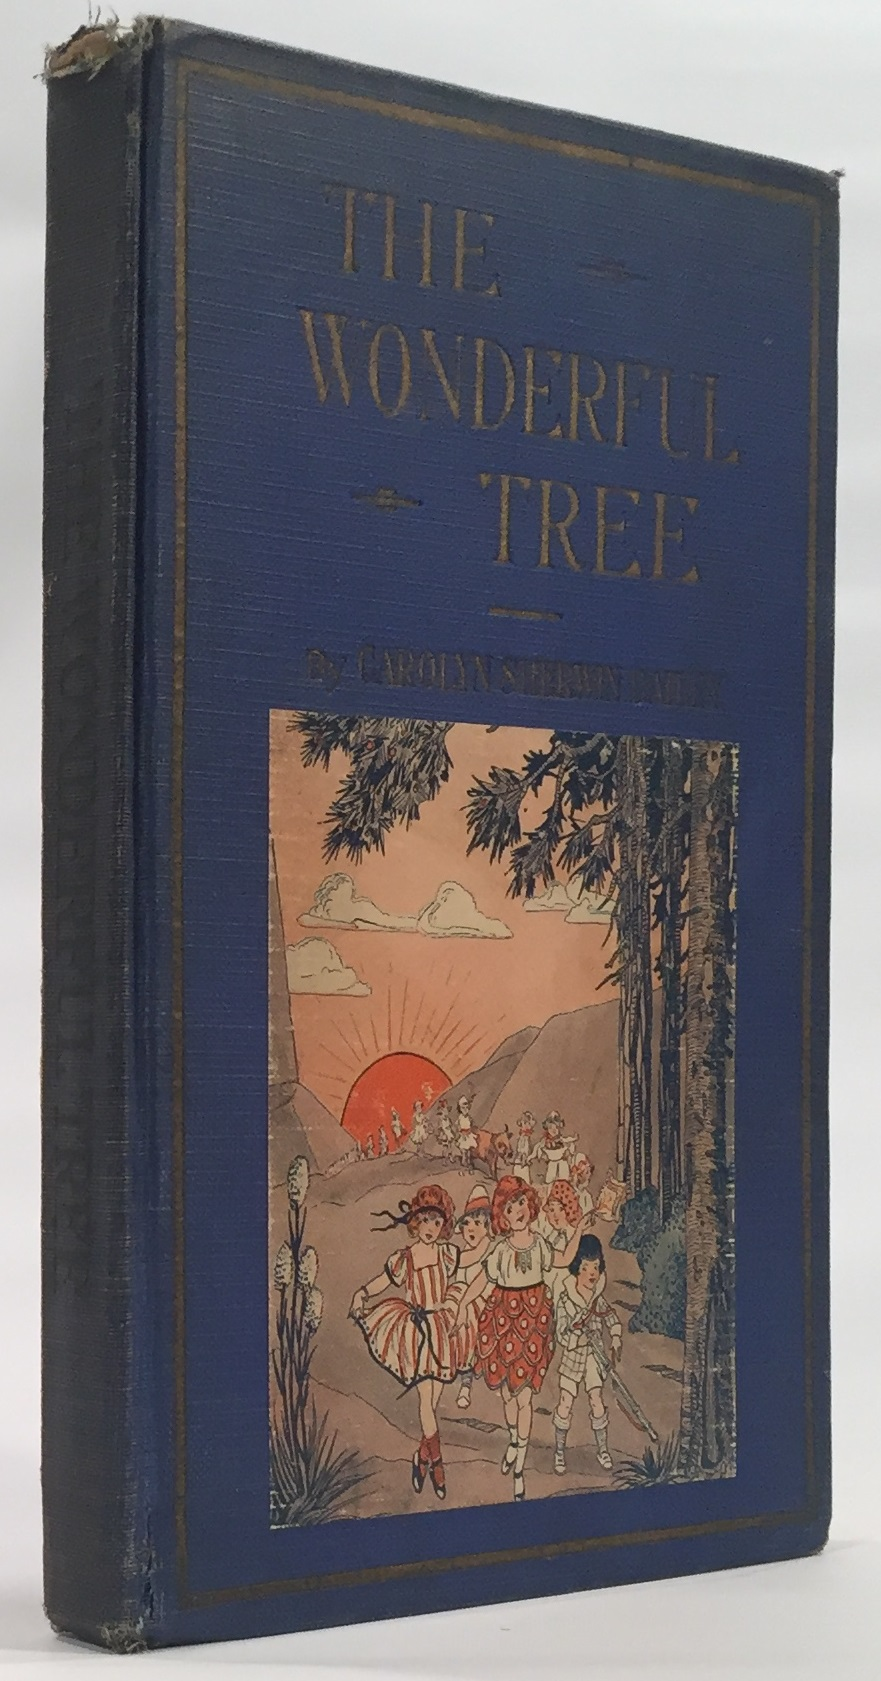 Image for The Wonderful Tree and Golden Day Stories